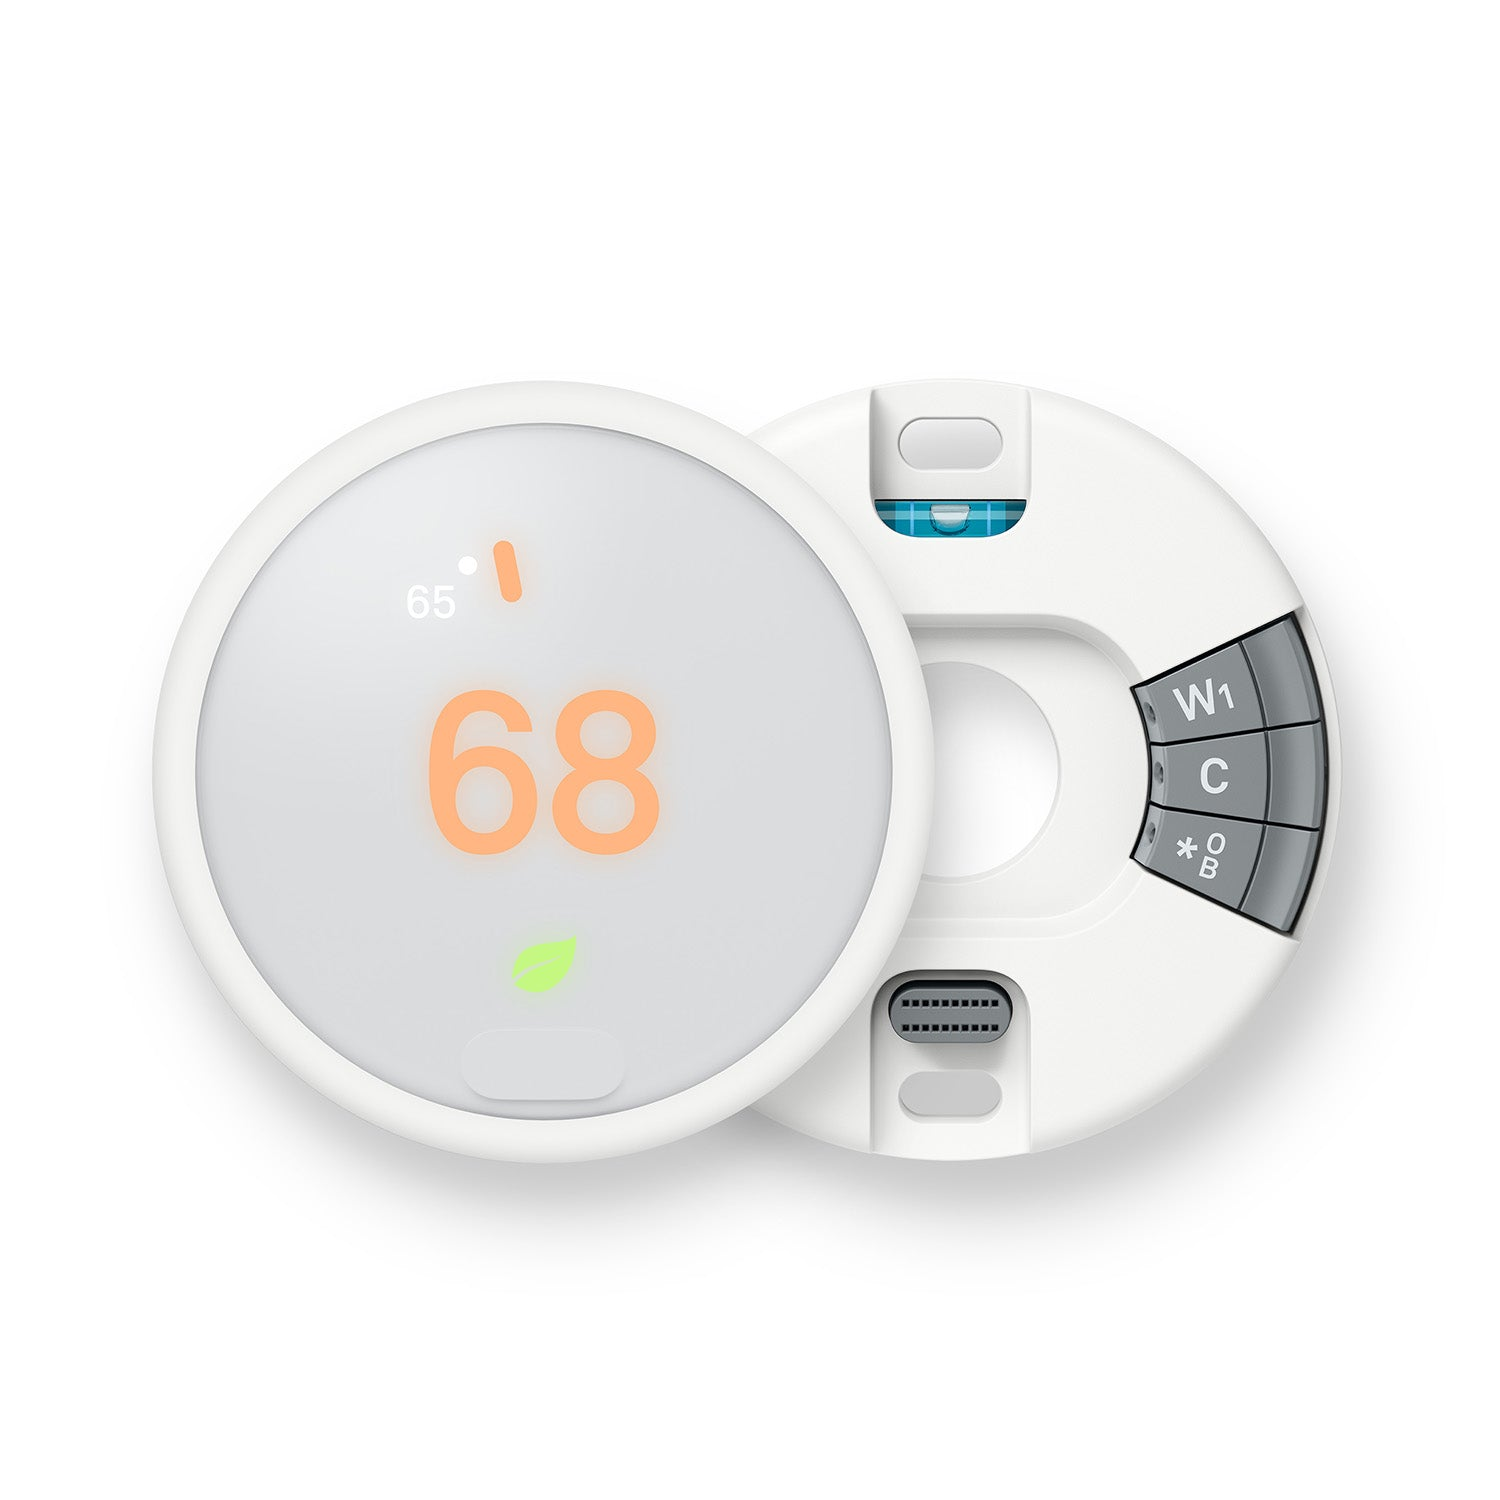 Nest Thermostat E Backplate and Display Image